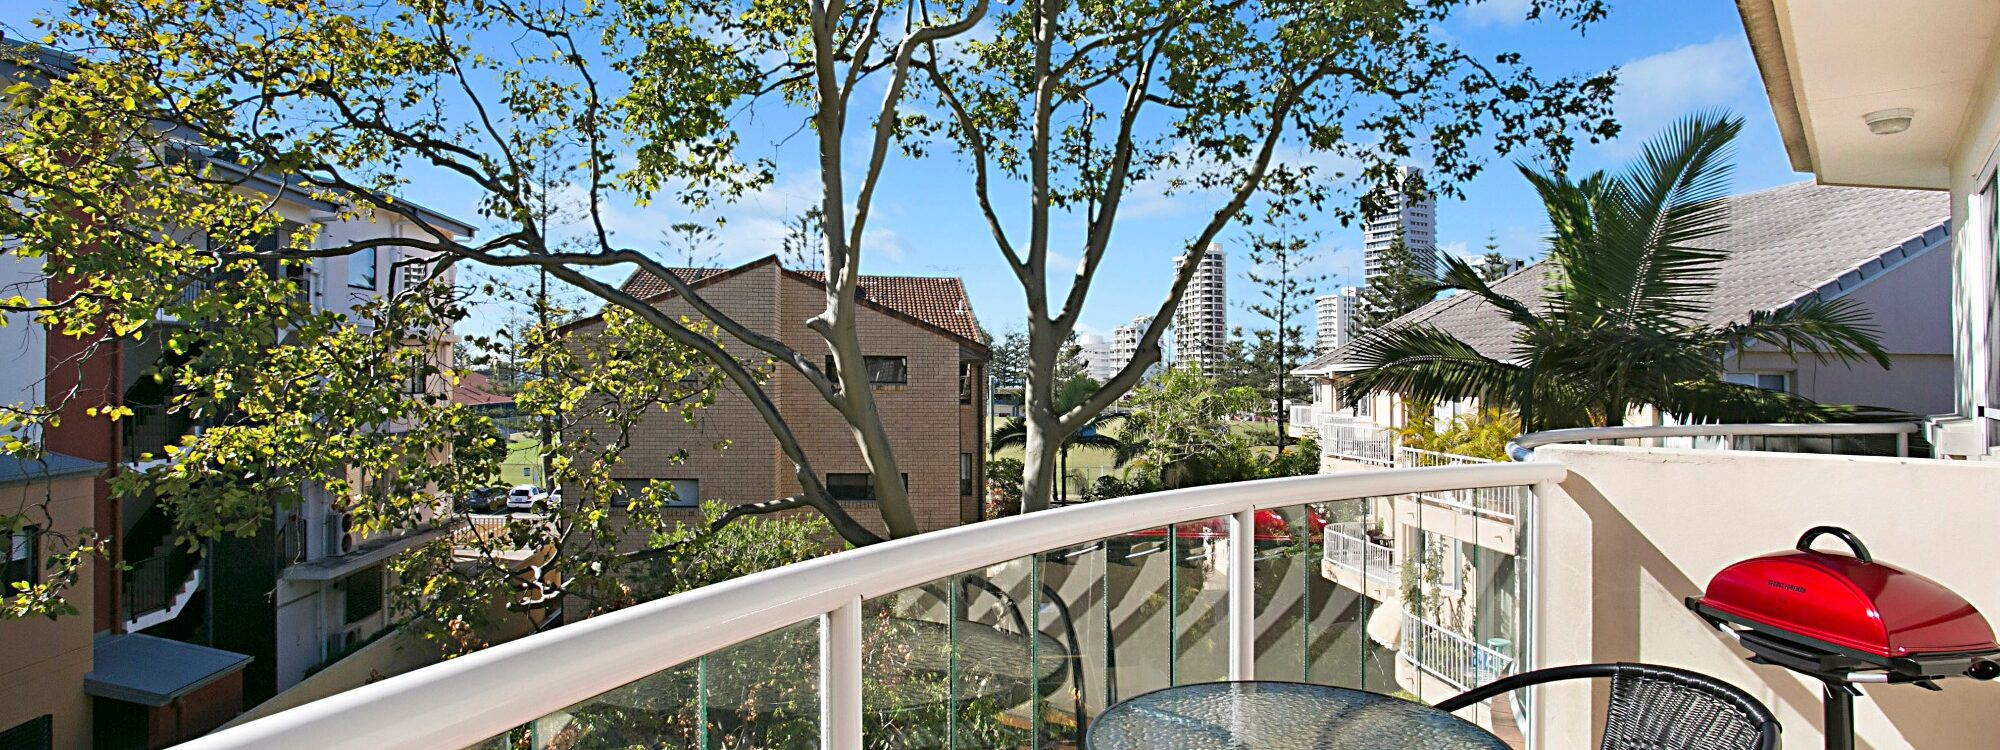 Harmony - Broadbeach - Balcony and view